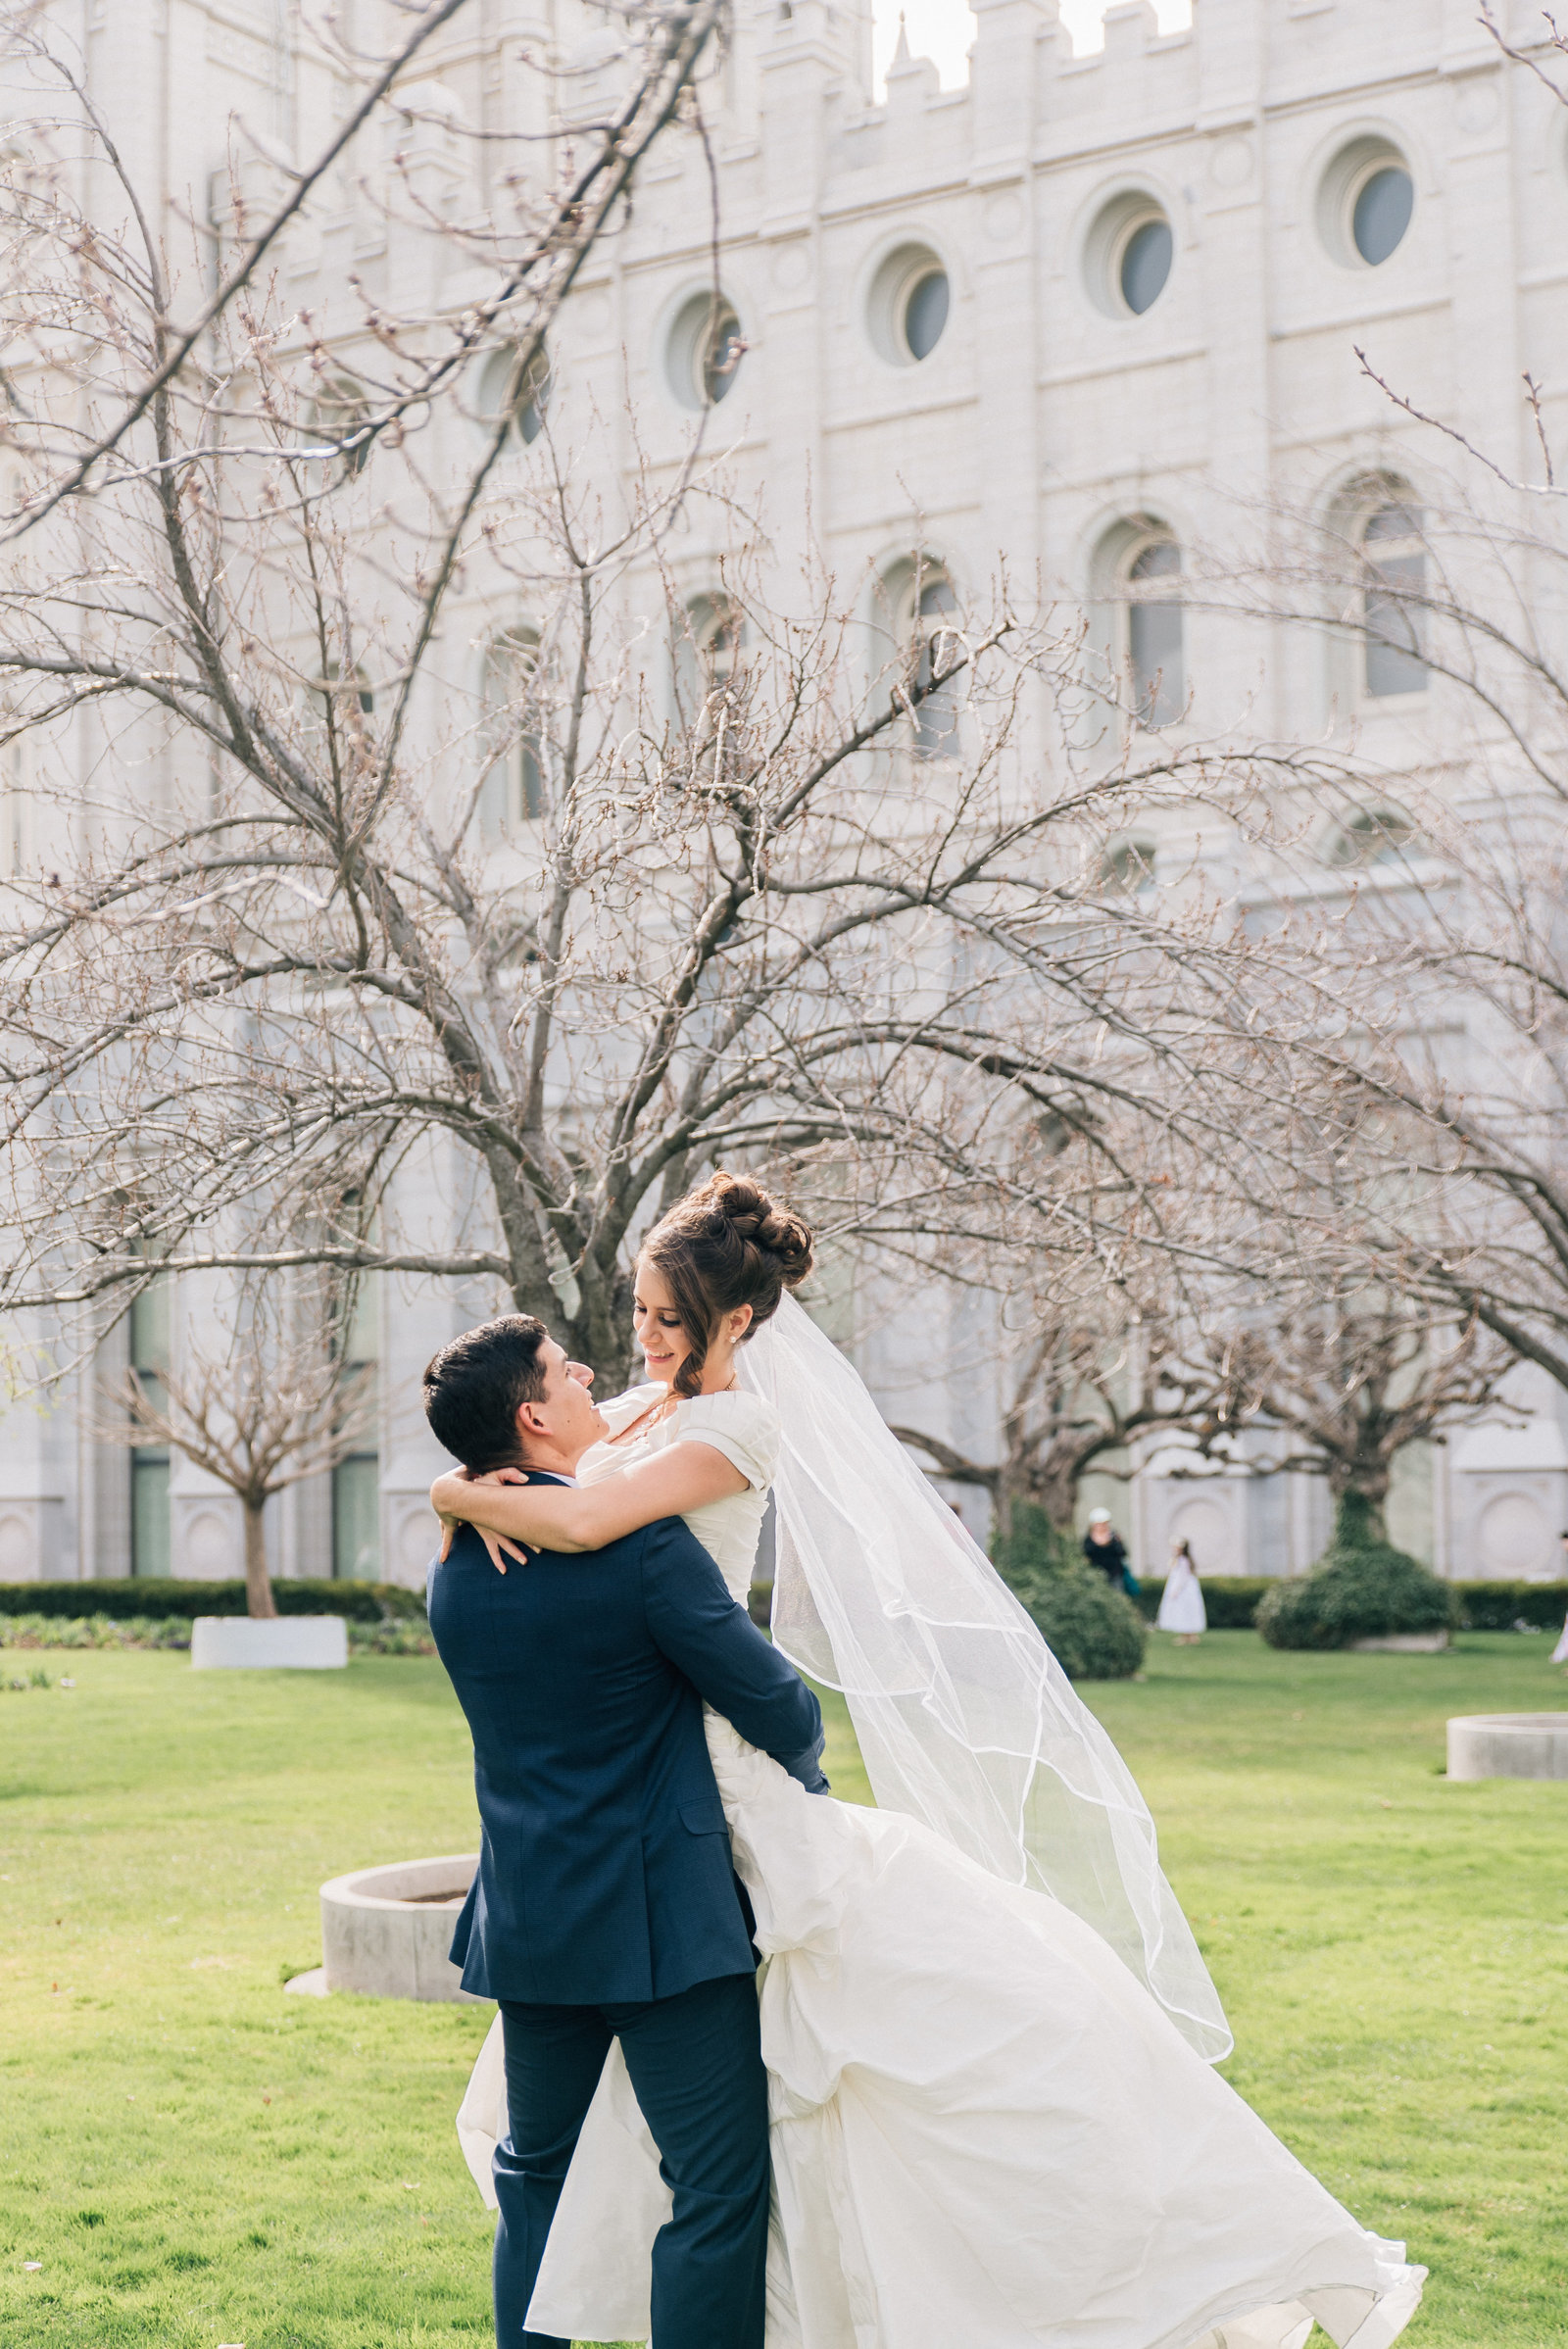 Salt+lake+temple+spring+wedding+utah+photographer  018